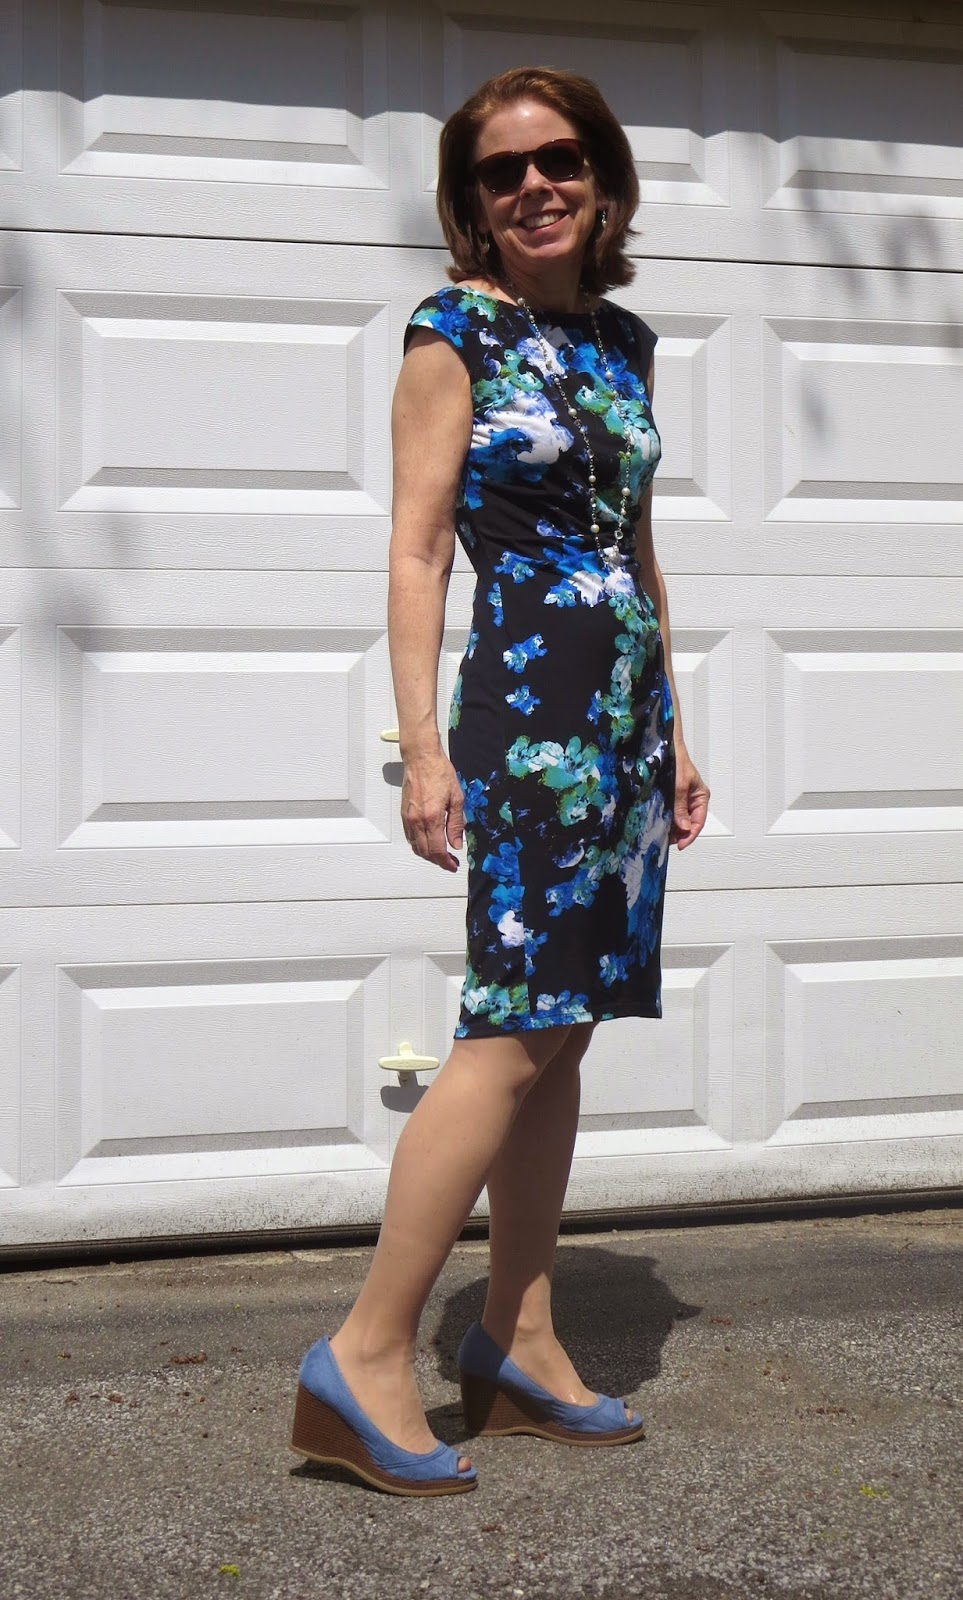 Flattering50: Style Over 50: 9 Things To Look for When Buying a Dress